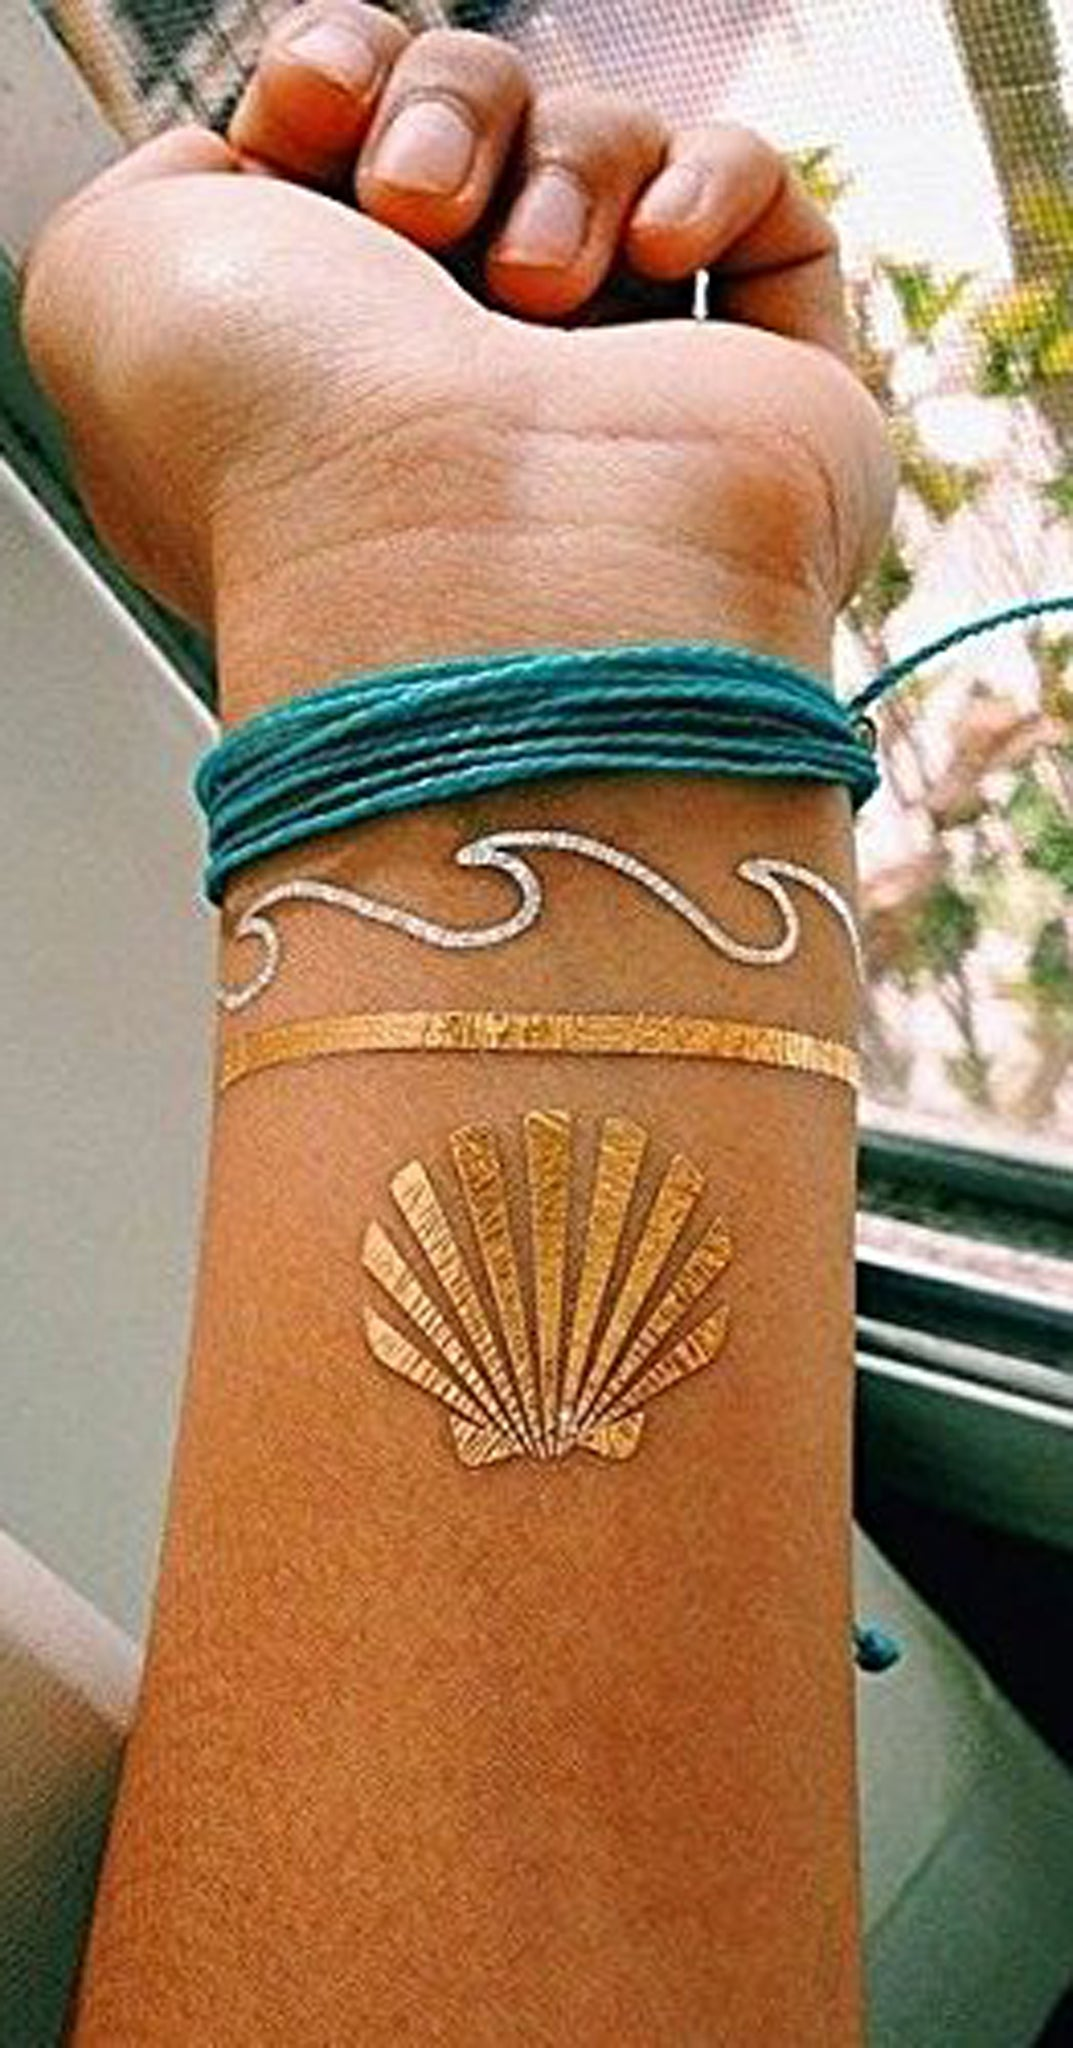 Seashell Tattoo Ideas for Women - Gold Metallic Sea Beach Flash Wrist Tat -  MyBodiArt.com